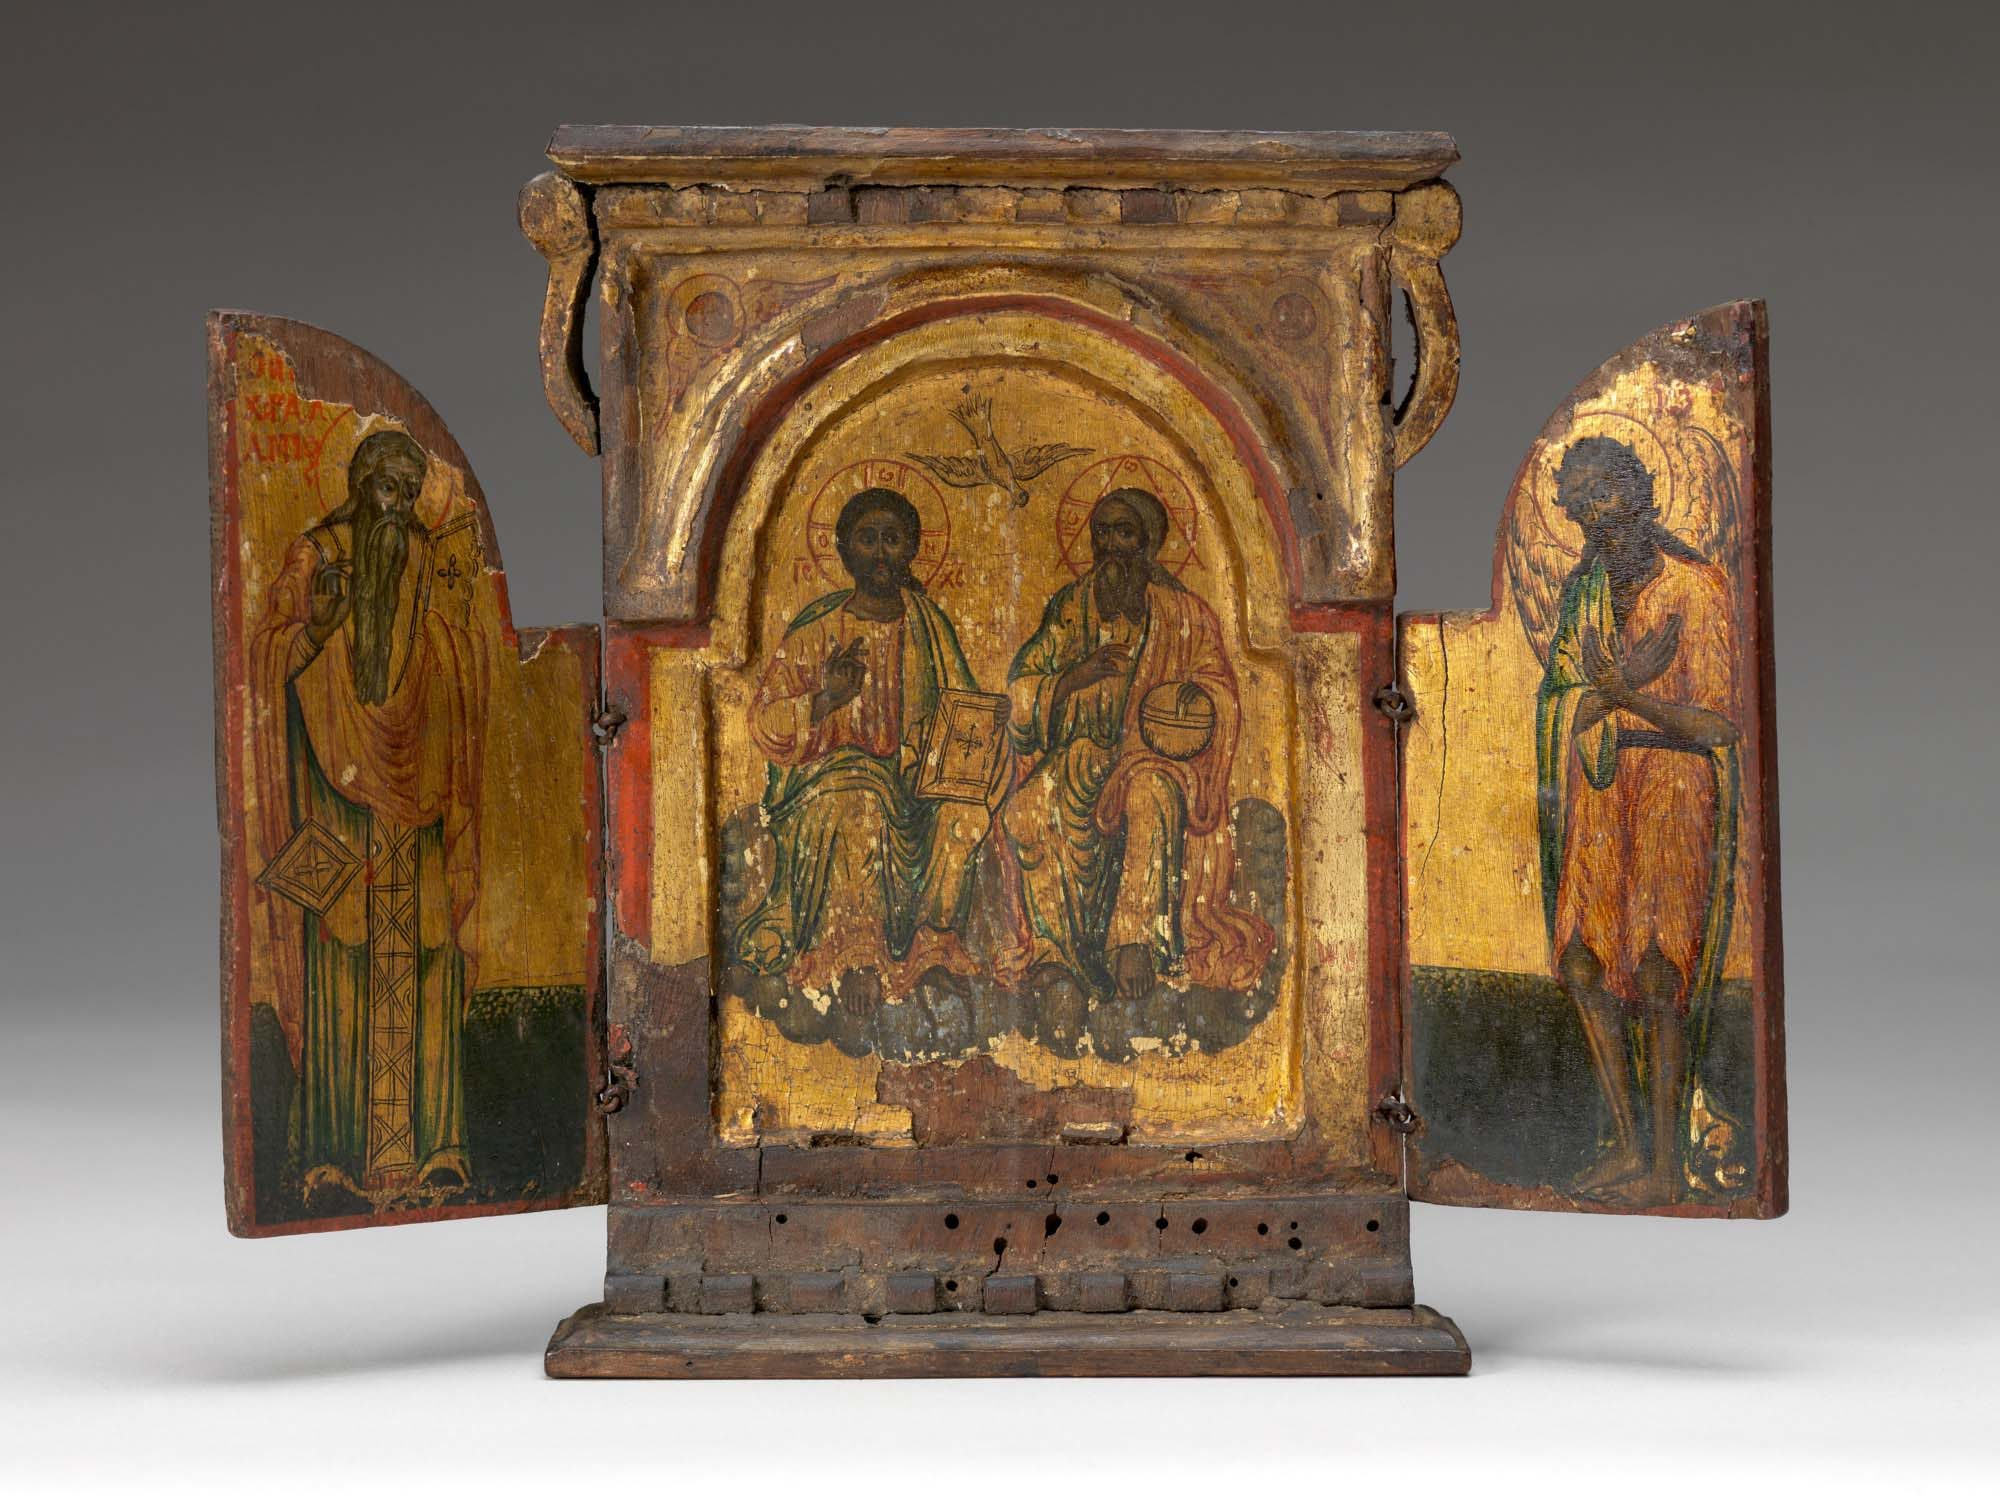 Unknown artist (Byzantine) Triptych, date unknown. Wood with polychrome and gilt, 8 1/4 x 10 1/2 x 1 1/4 in. Gift of Emerson Swift, 73.61.G